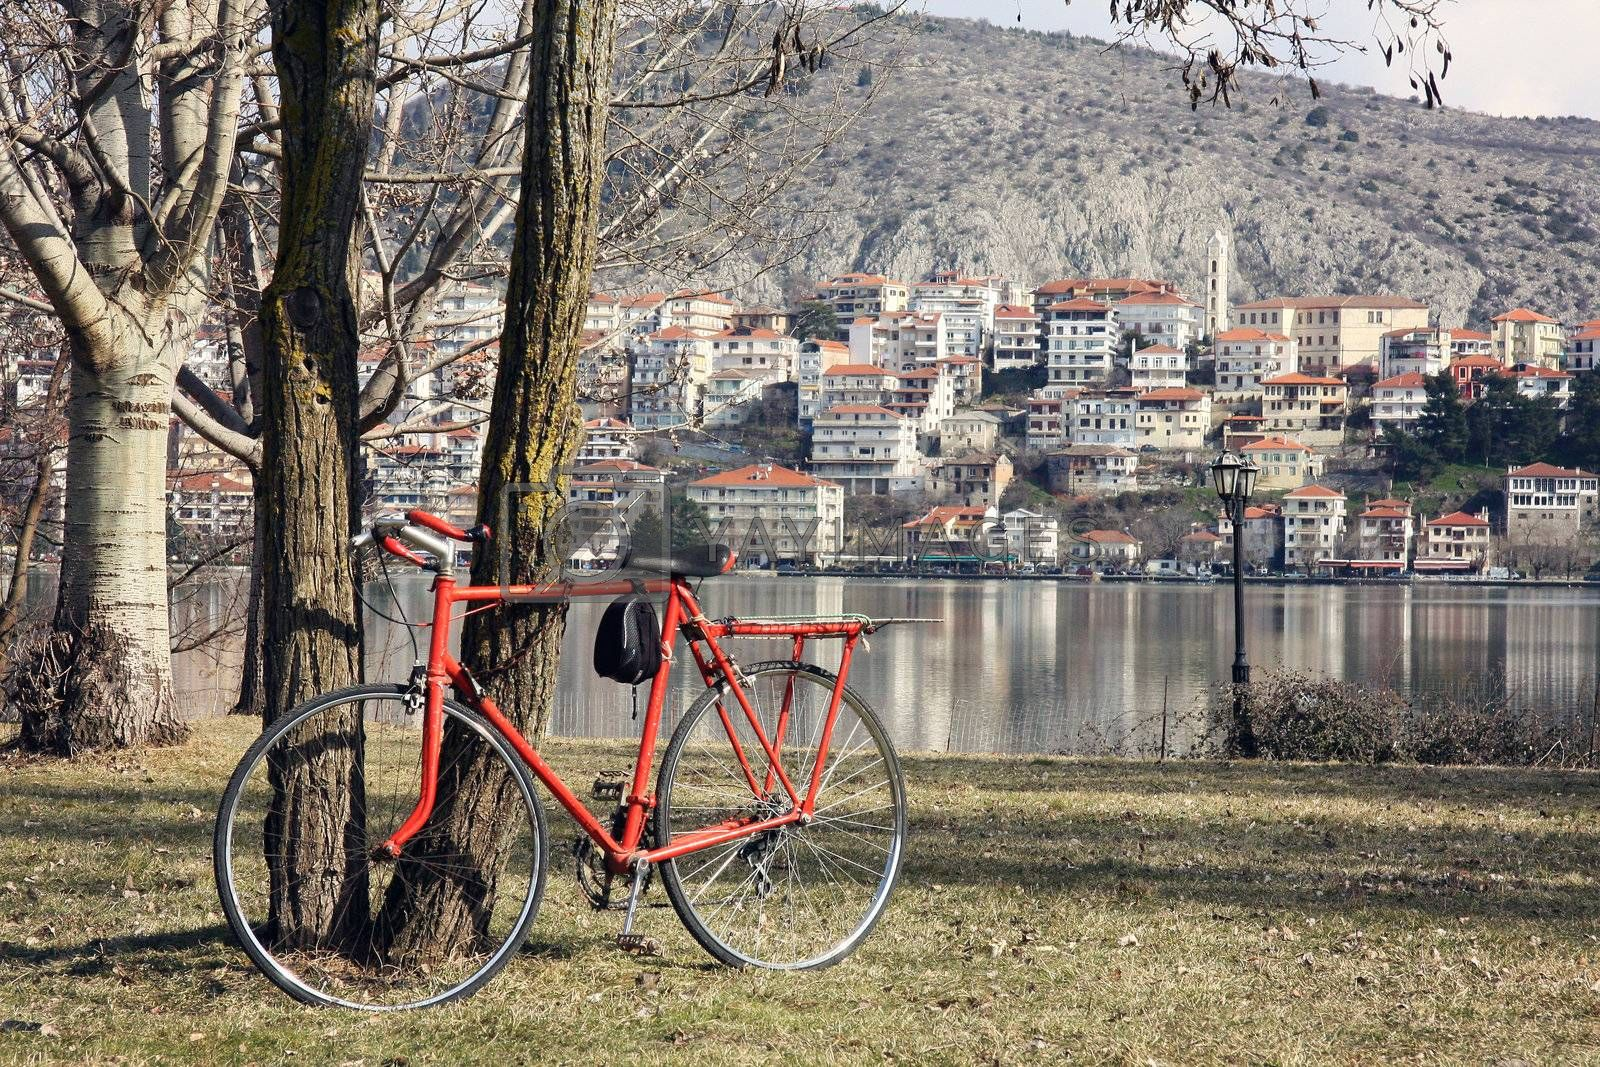 The bicycle and the view of Kastoria with the lake